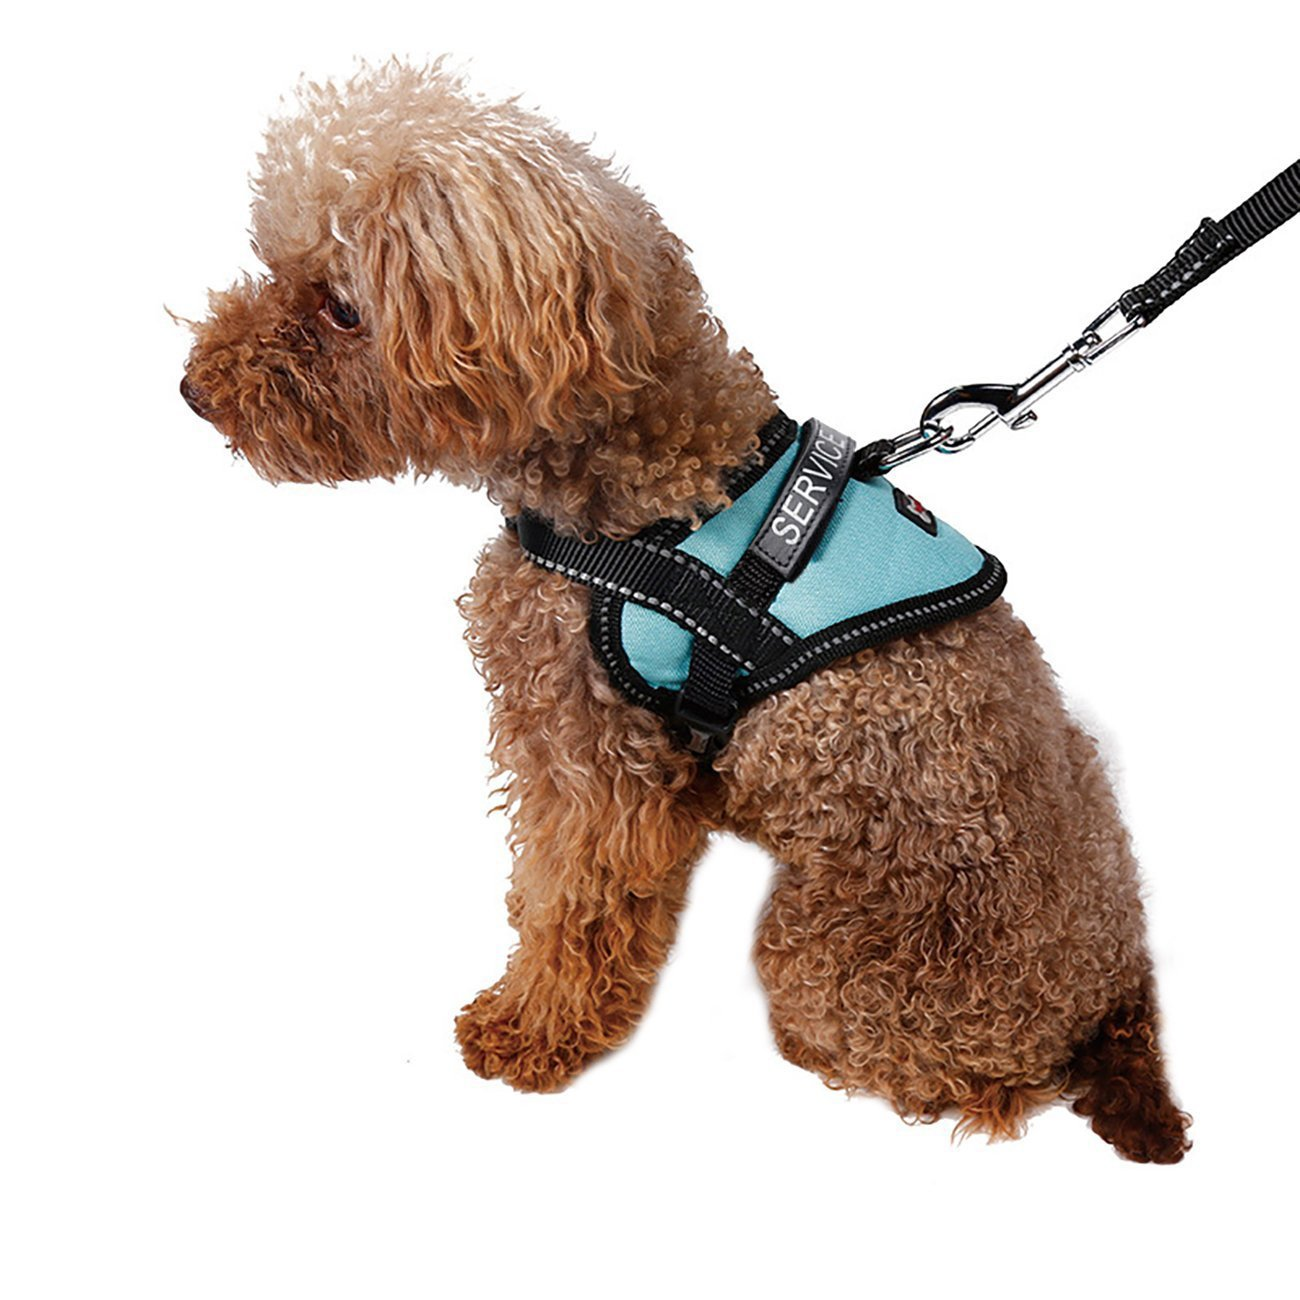 UHeng Service Vest Dog Harness Adjustable Nylon Dog Vest with Reflective Patches for Small Service Dogs in Training